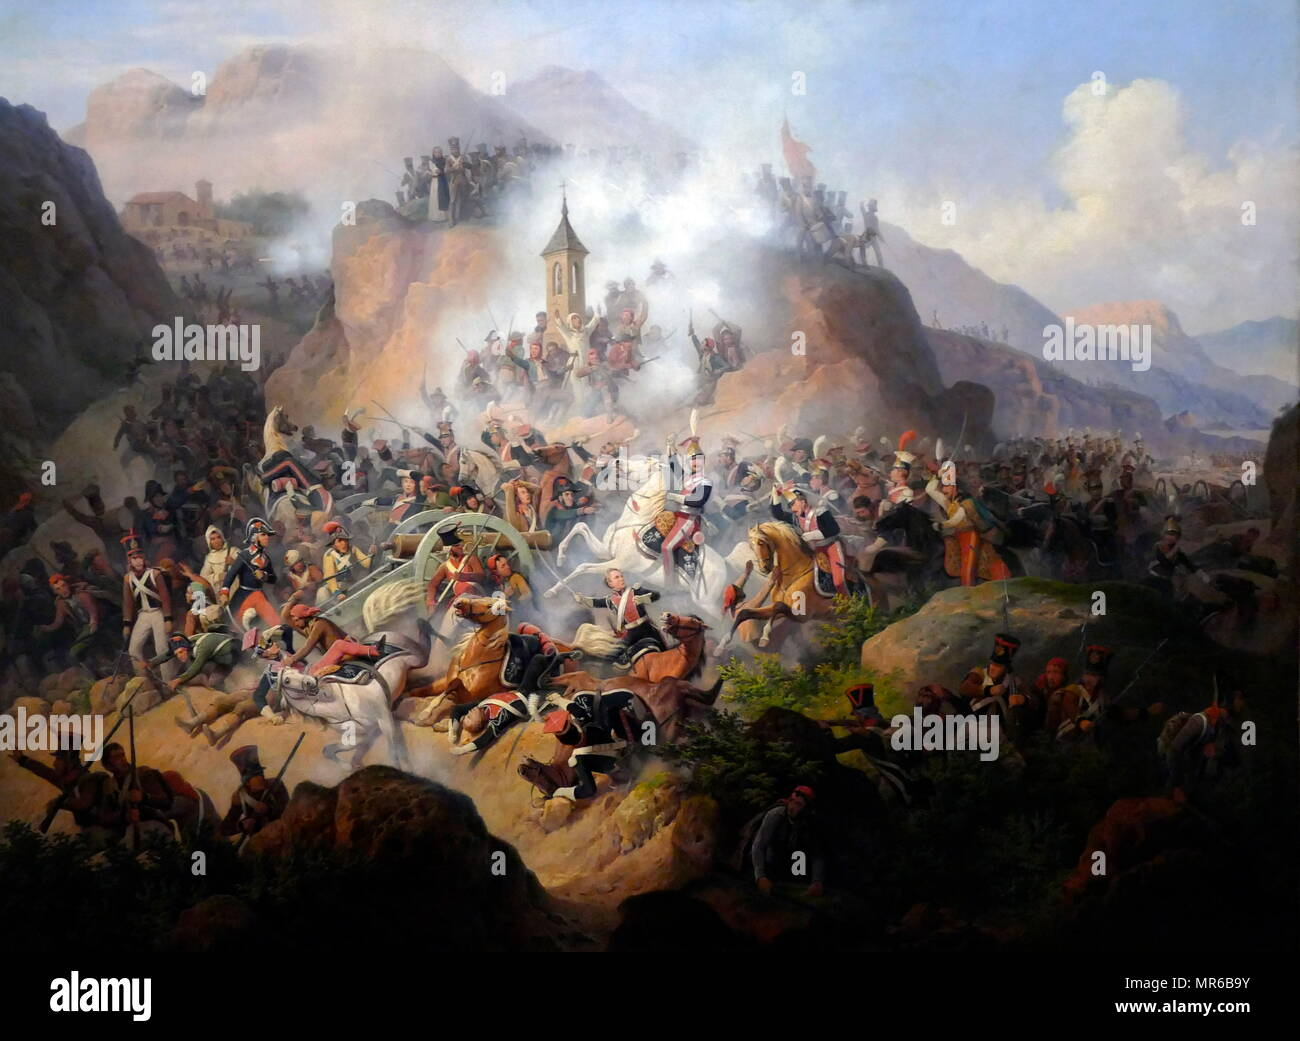 The Battle of Somosierra, by January Suchodolski (1797–1875), painter. The Battle occurred November 30, 1808, in the Peninsular War, when a French army under Napoleon I forced a passage through the Sierra de Guadarrama, shielding Madrid Stock Photo